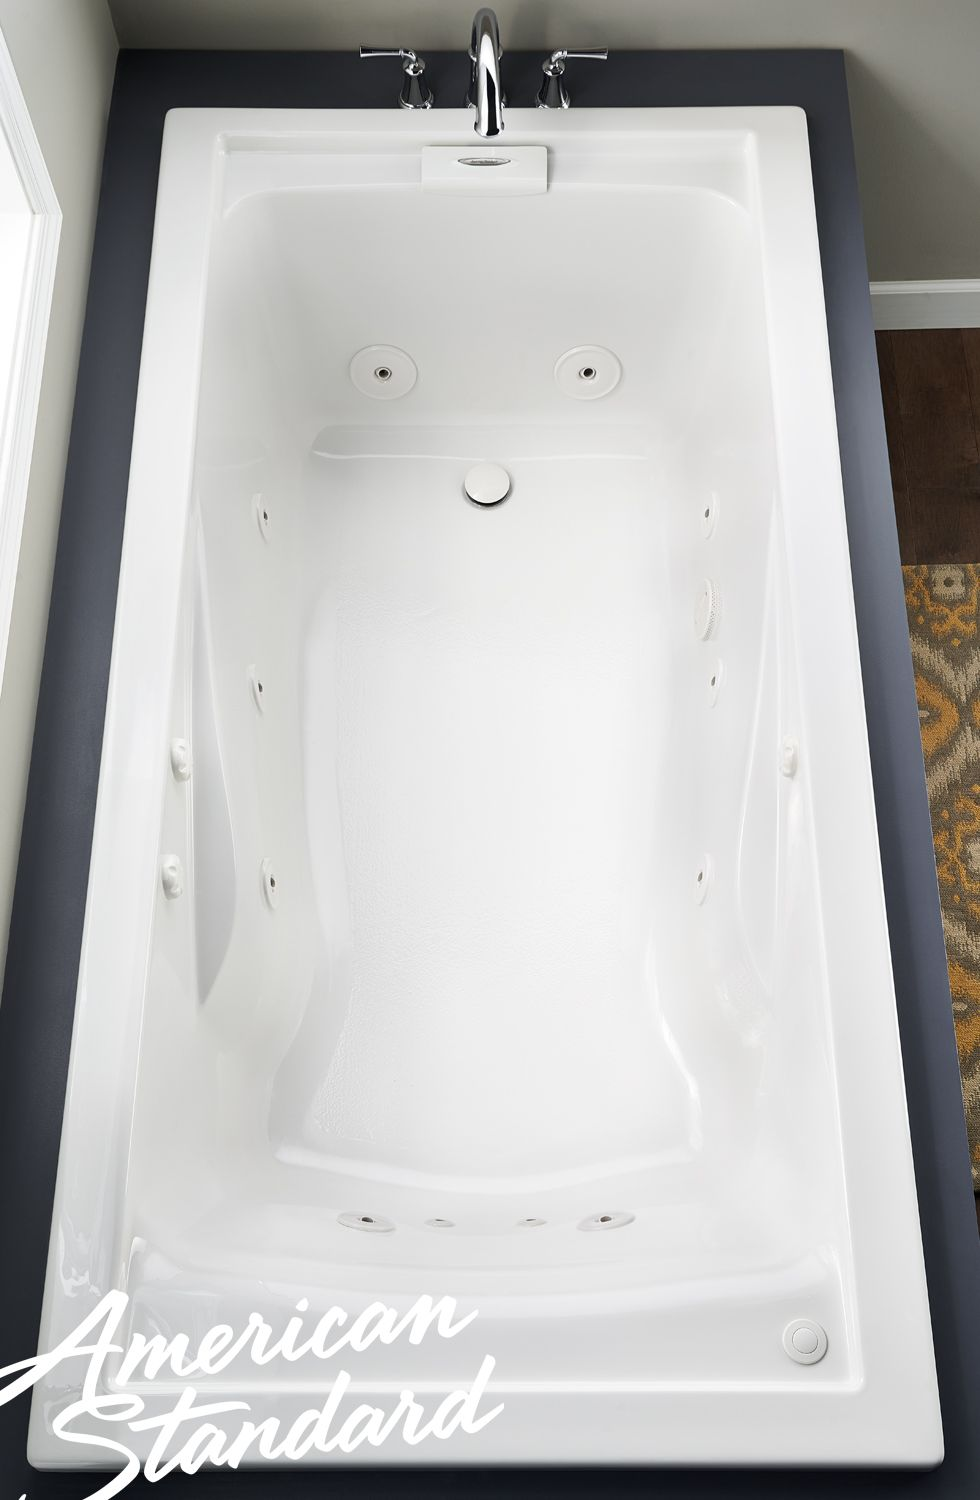 American Standard Champion Xl 6 Ft X 36 In X 21 5 In Whirlpool Tub In White 7239lch 020 The Home Depot Whirlpool Tub Tub American Standard